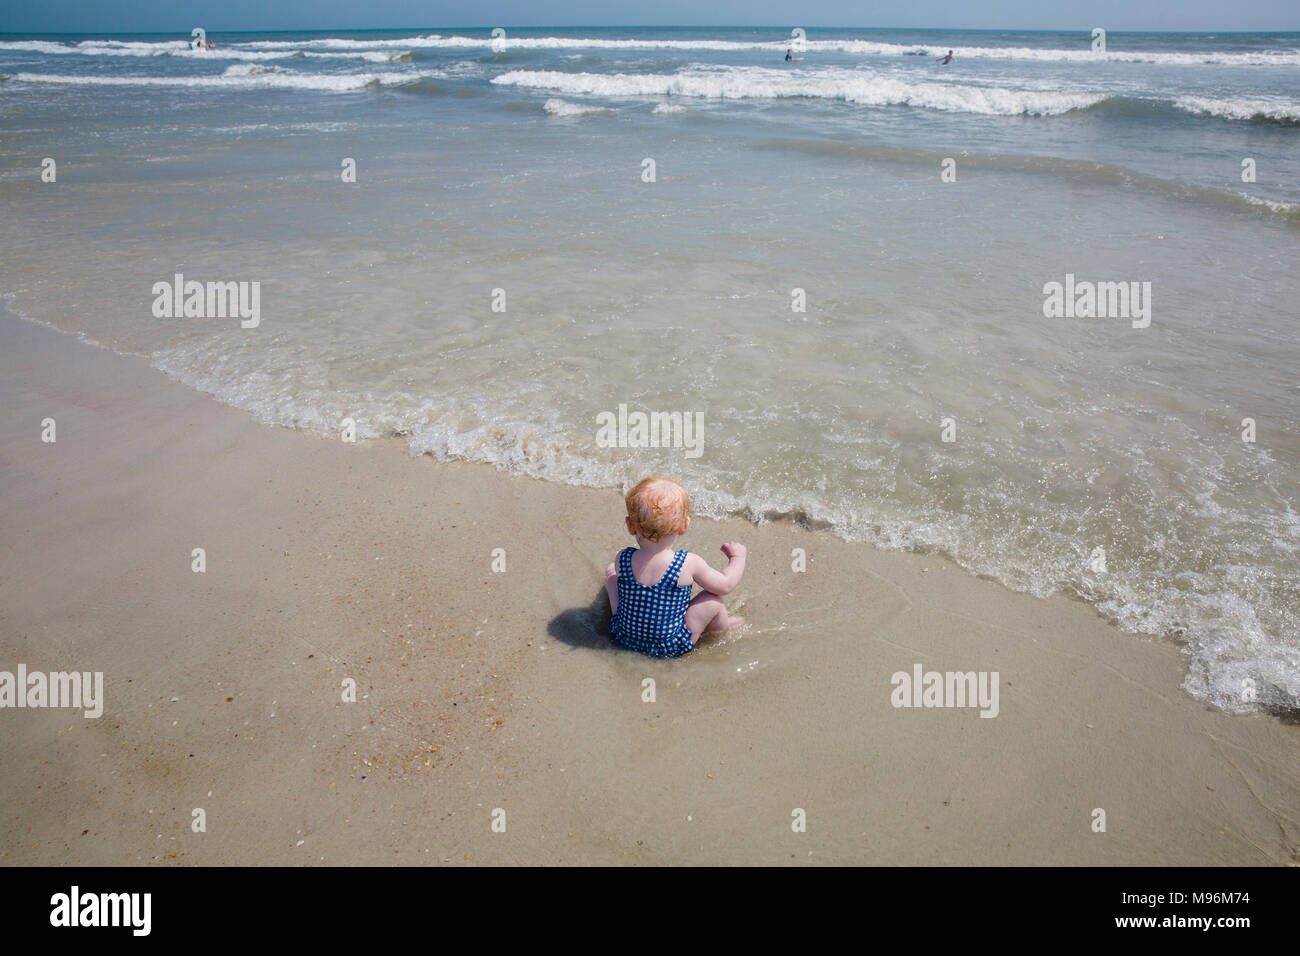 Baby sitting in water on beach - Stock Image